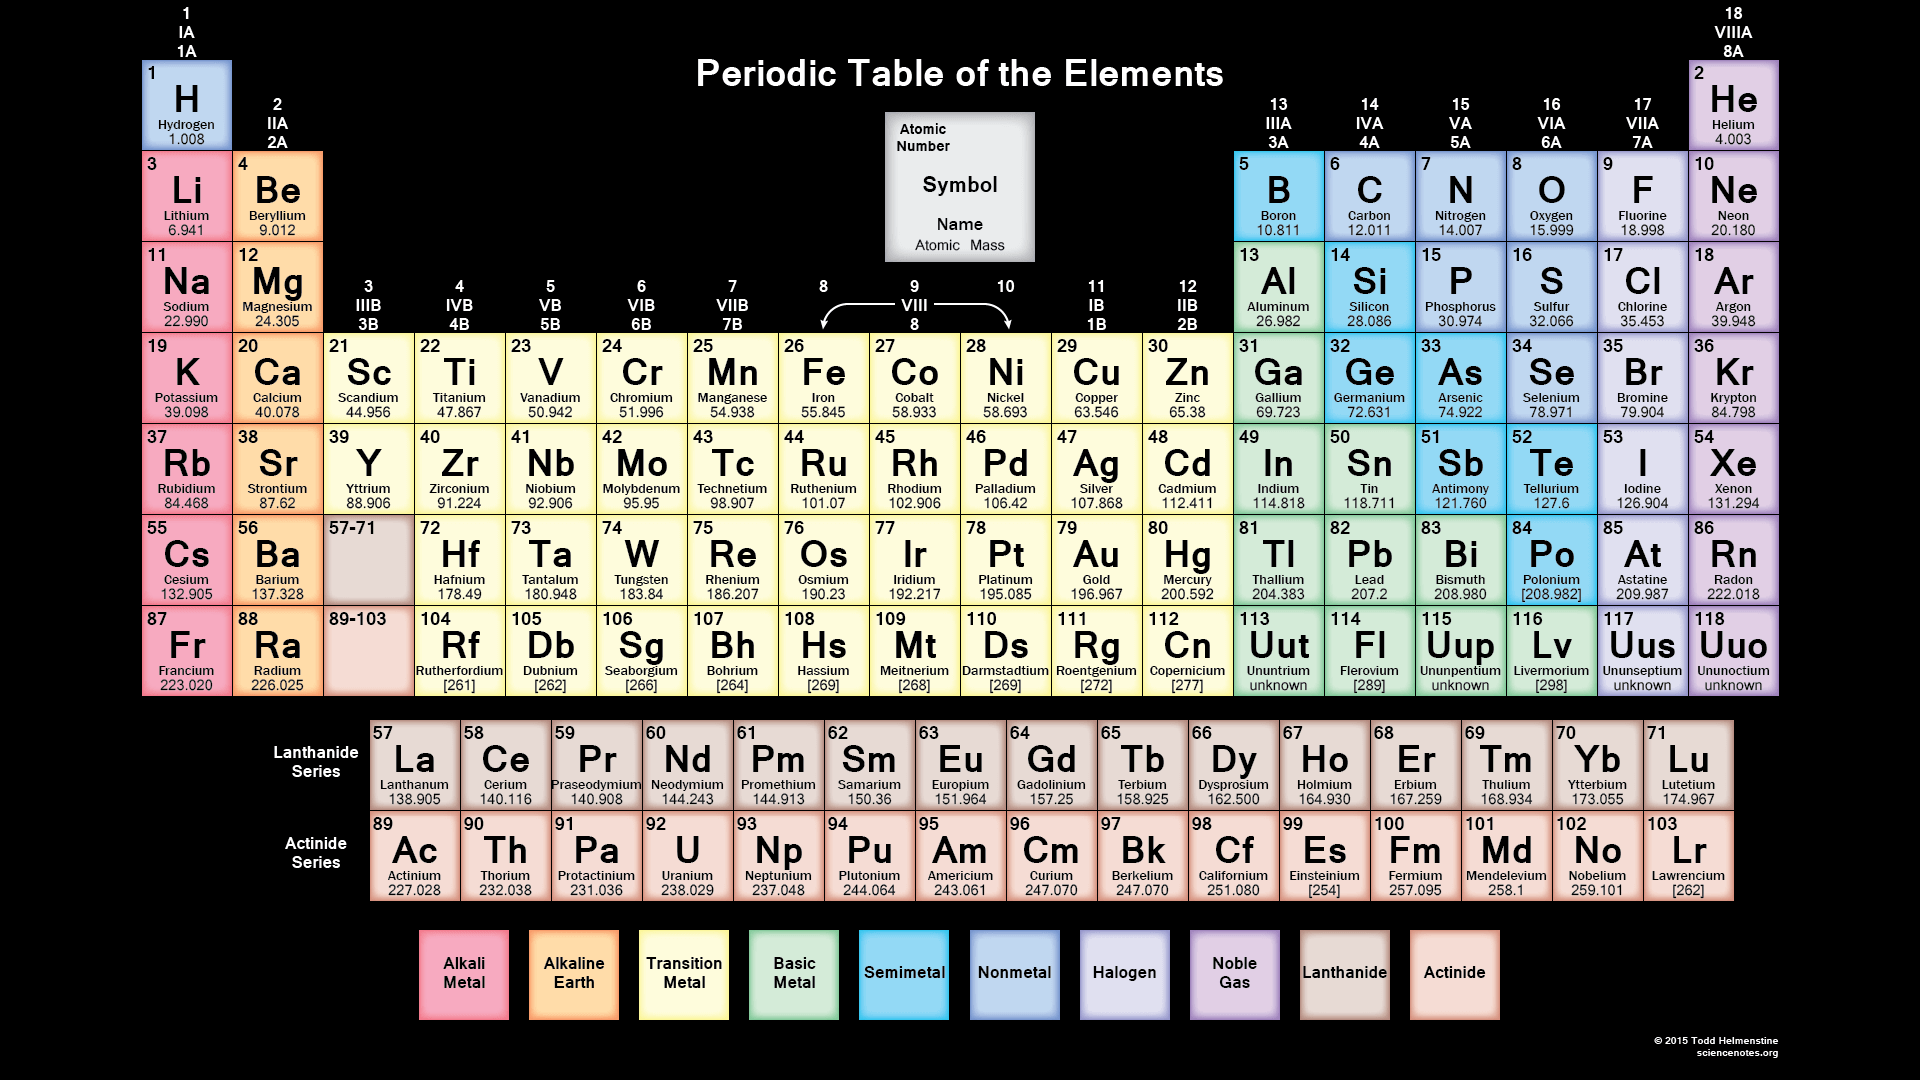 Hd periodic table wallpaper muted colors hd periodic table wallpaper with black background urtaz Image collections